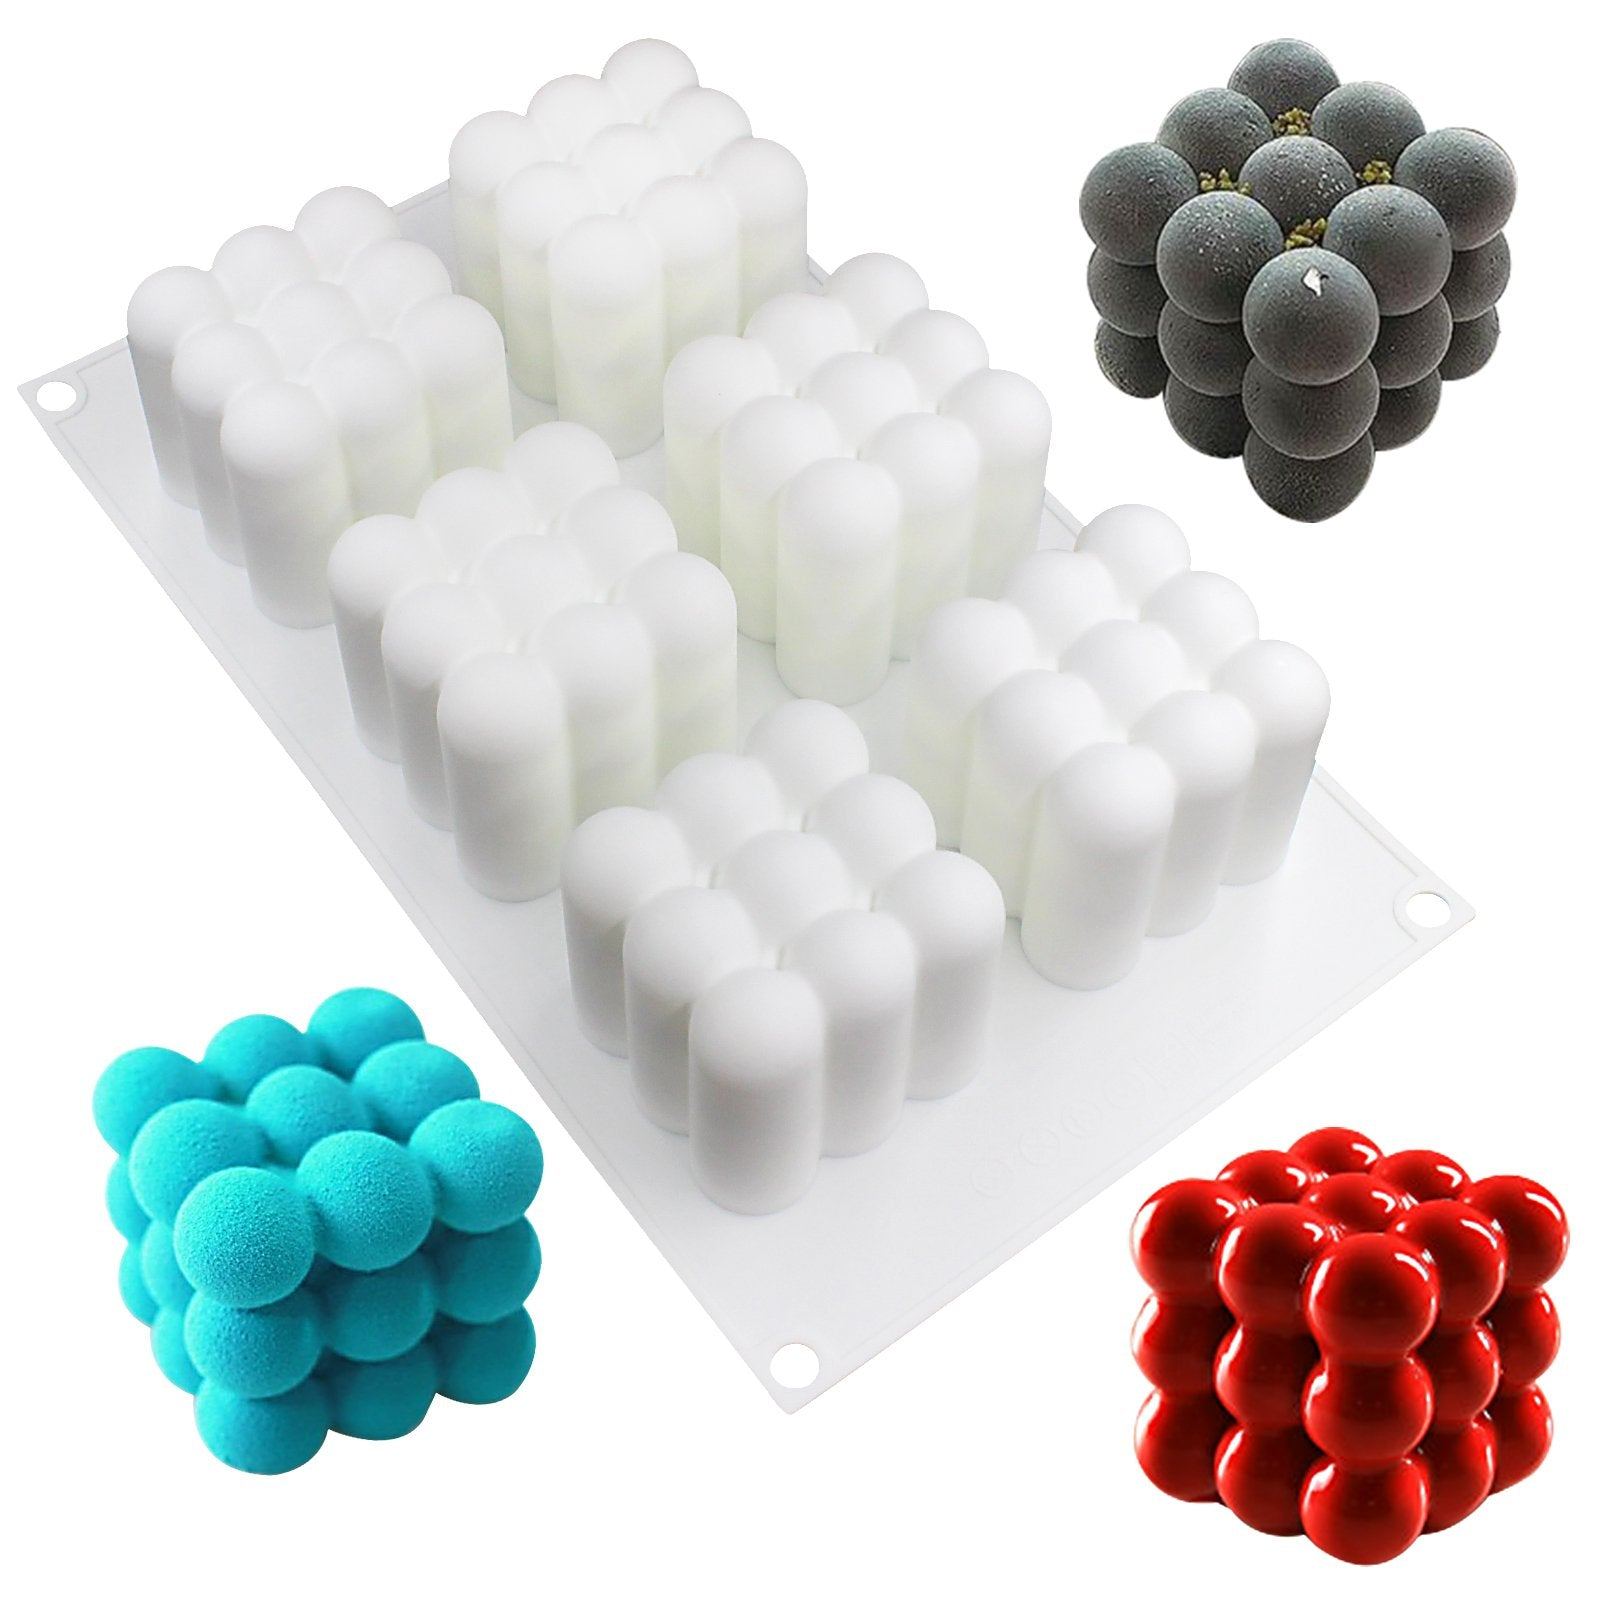 Magic Cubes Glaze Cake Mousse Silicone Mold Tray